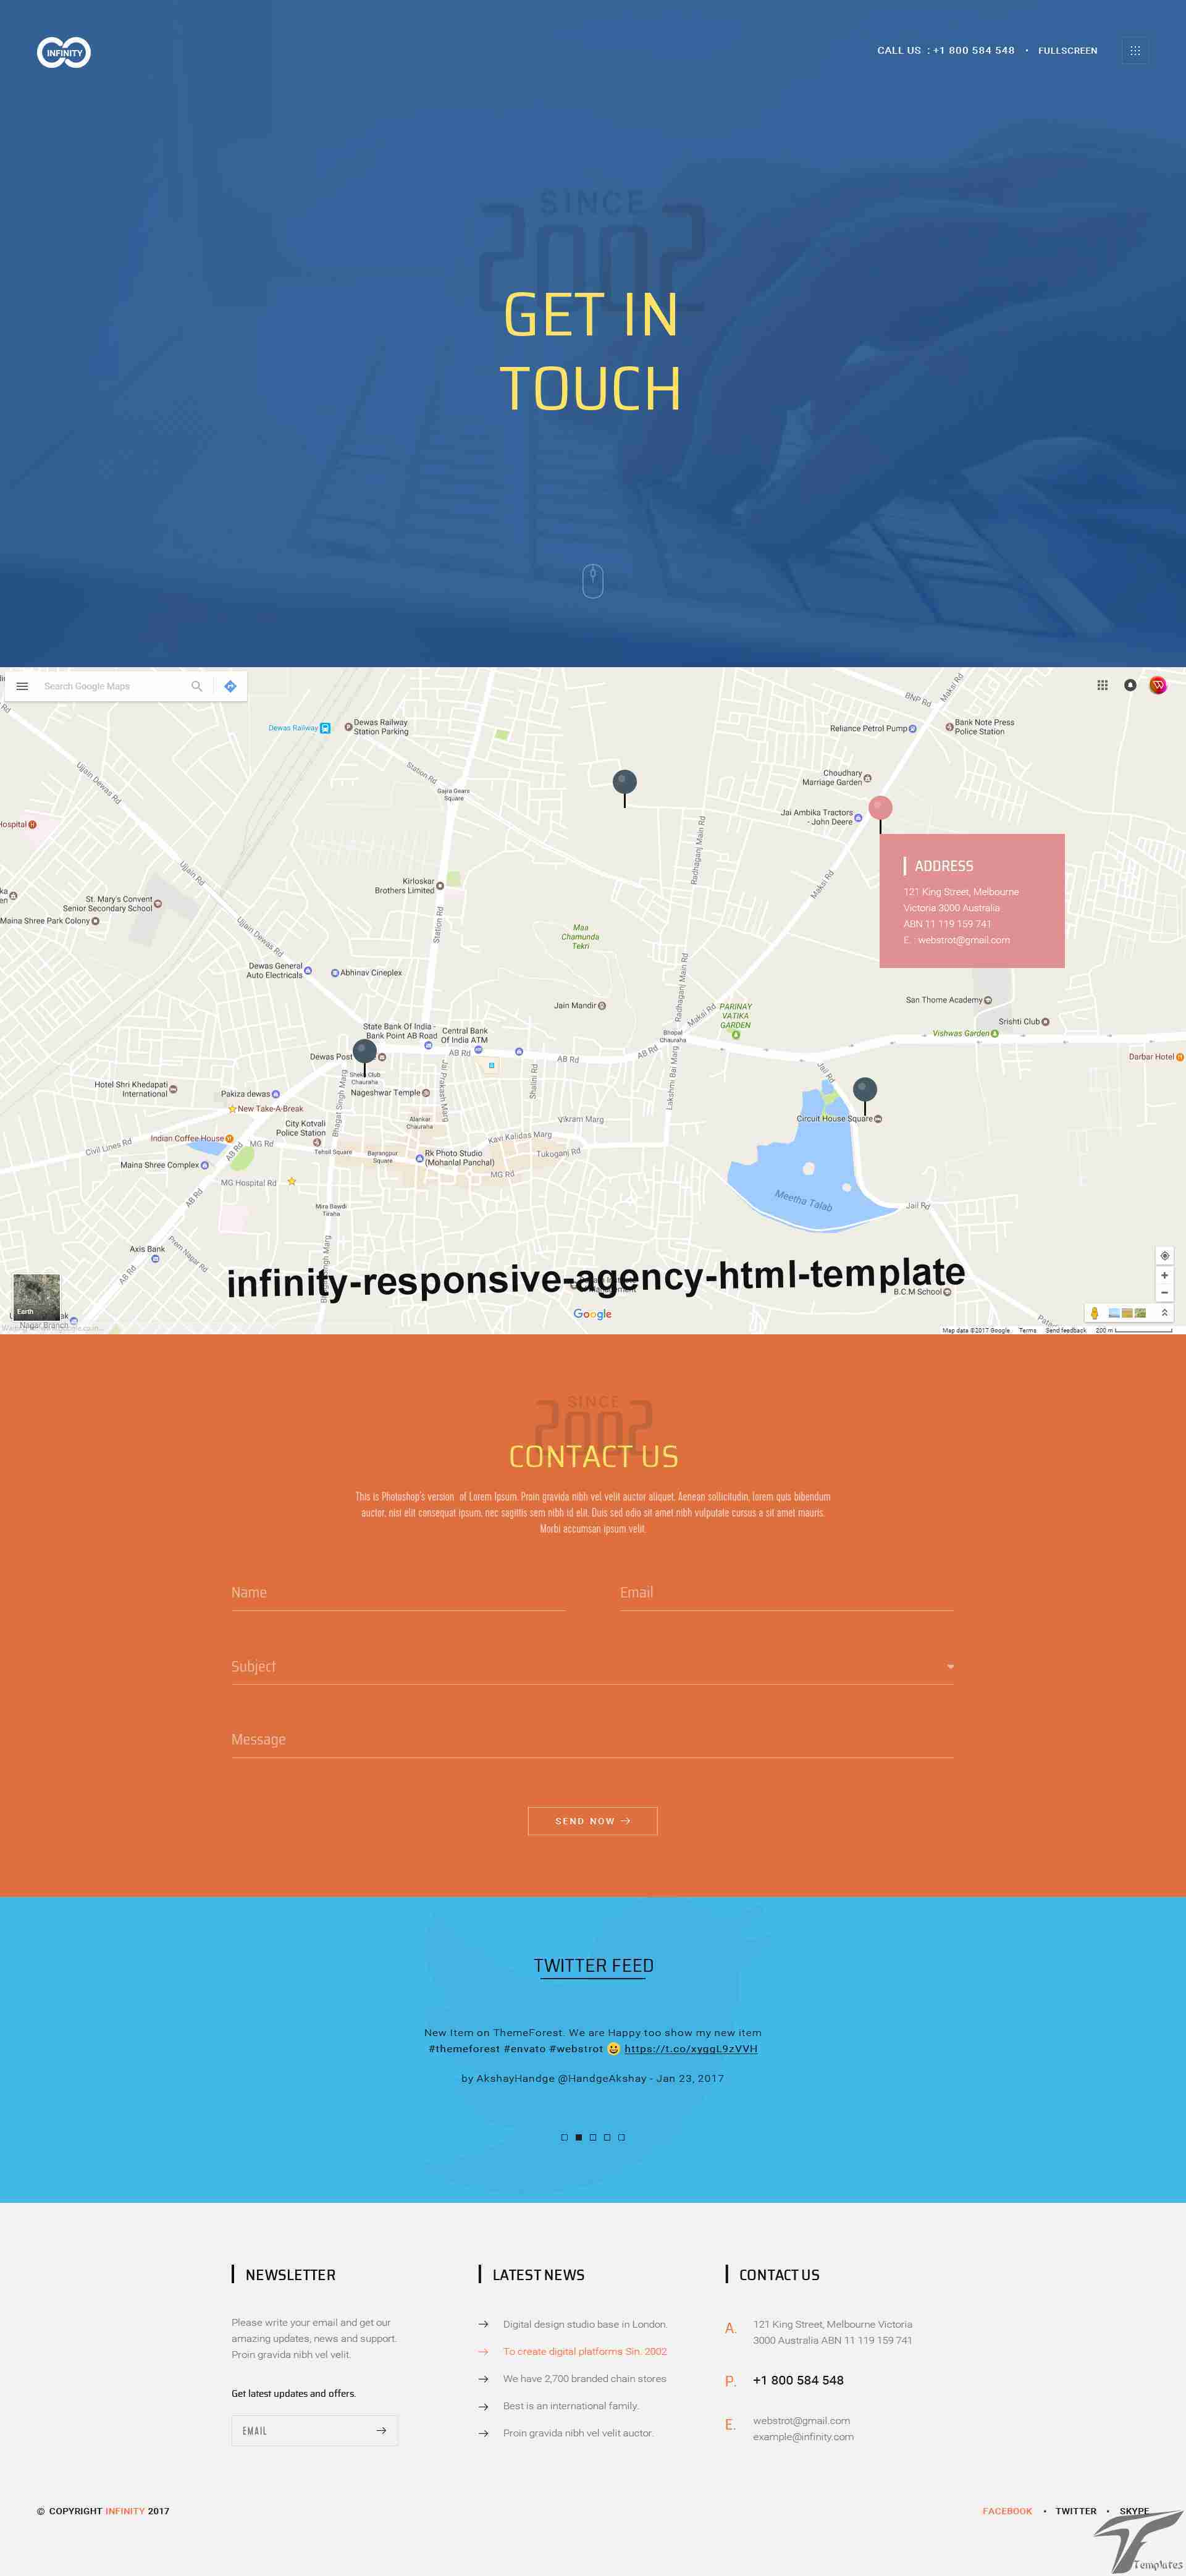 https://images.besthemes.com/images/h1_infinity-responsive-agency-html-template8-_-250603589/Theme_Preview/08_Contact_Us.jpg